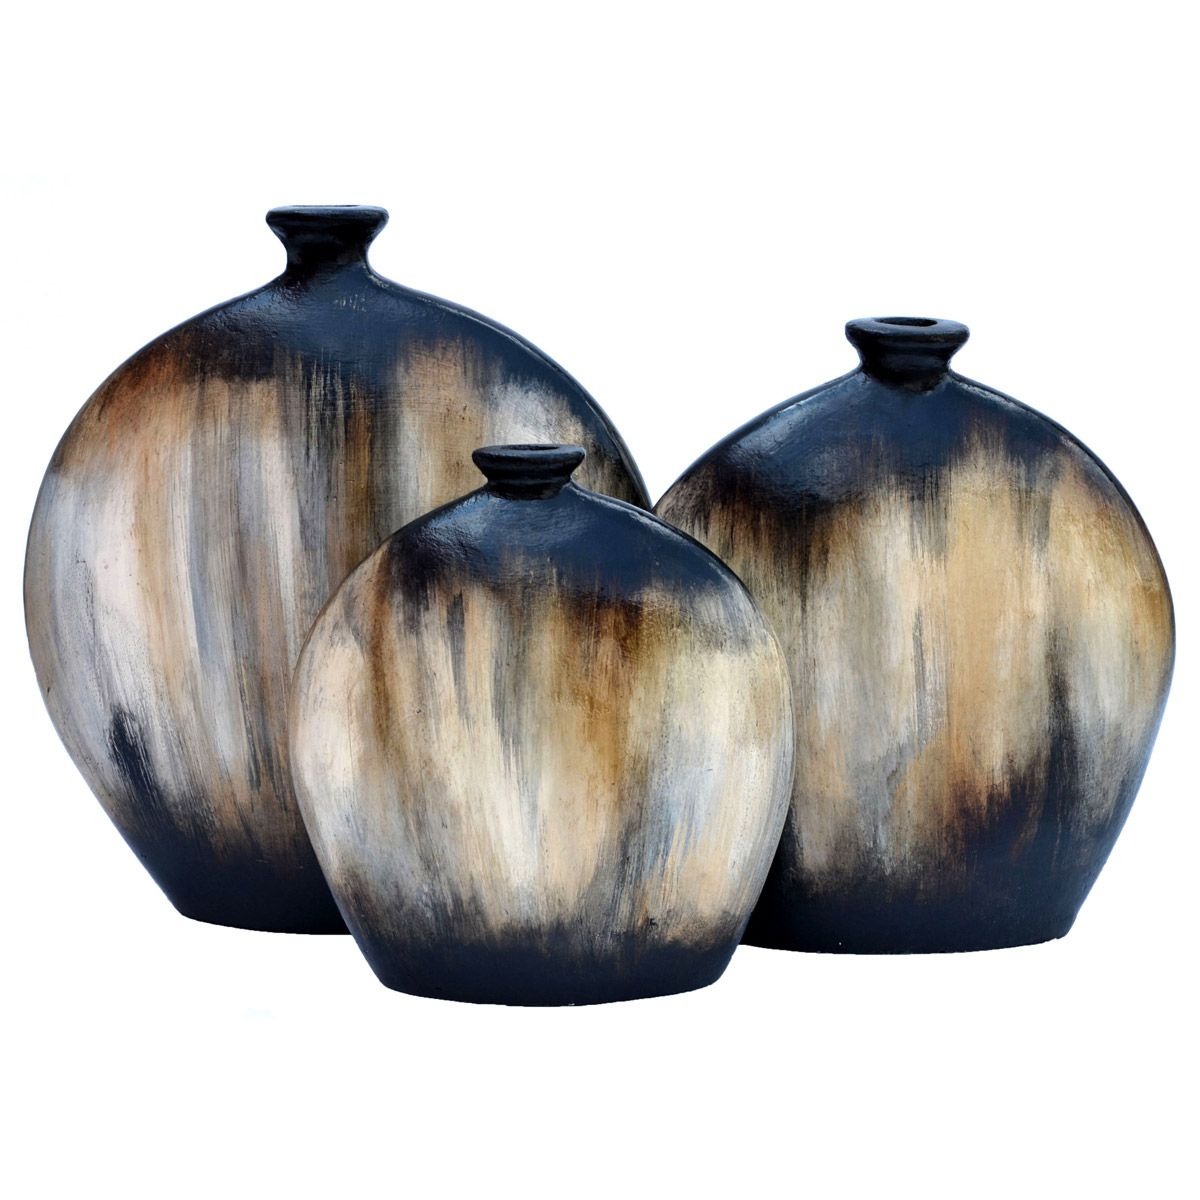 Medium Tulipan Vases - Set of 3